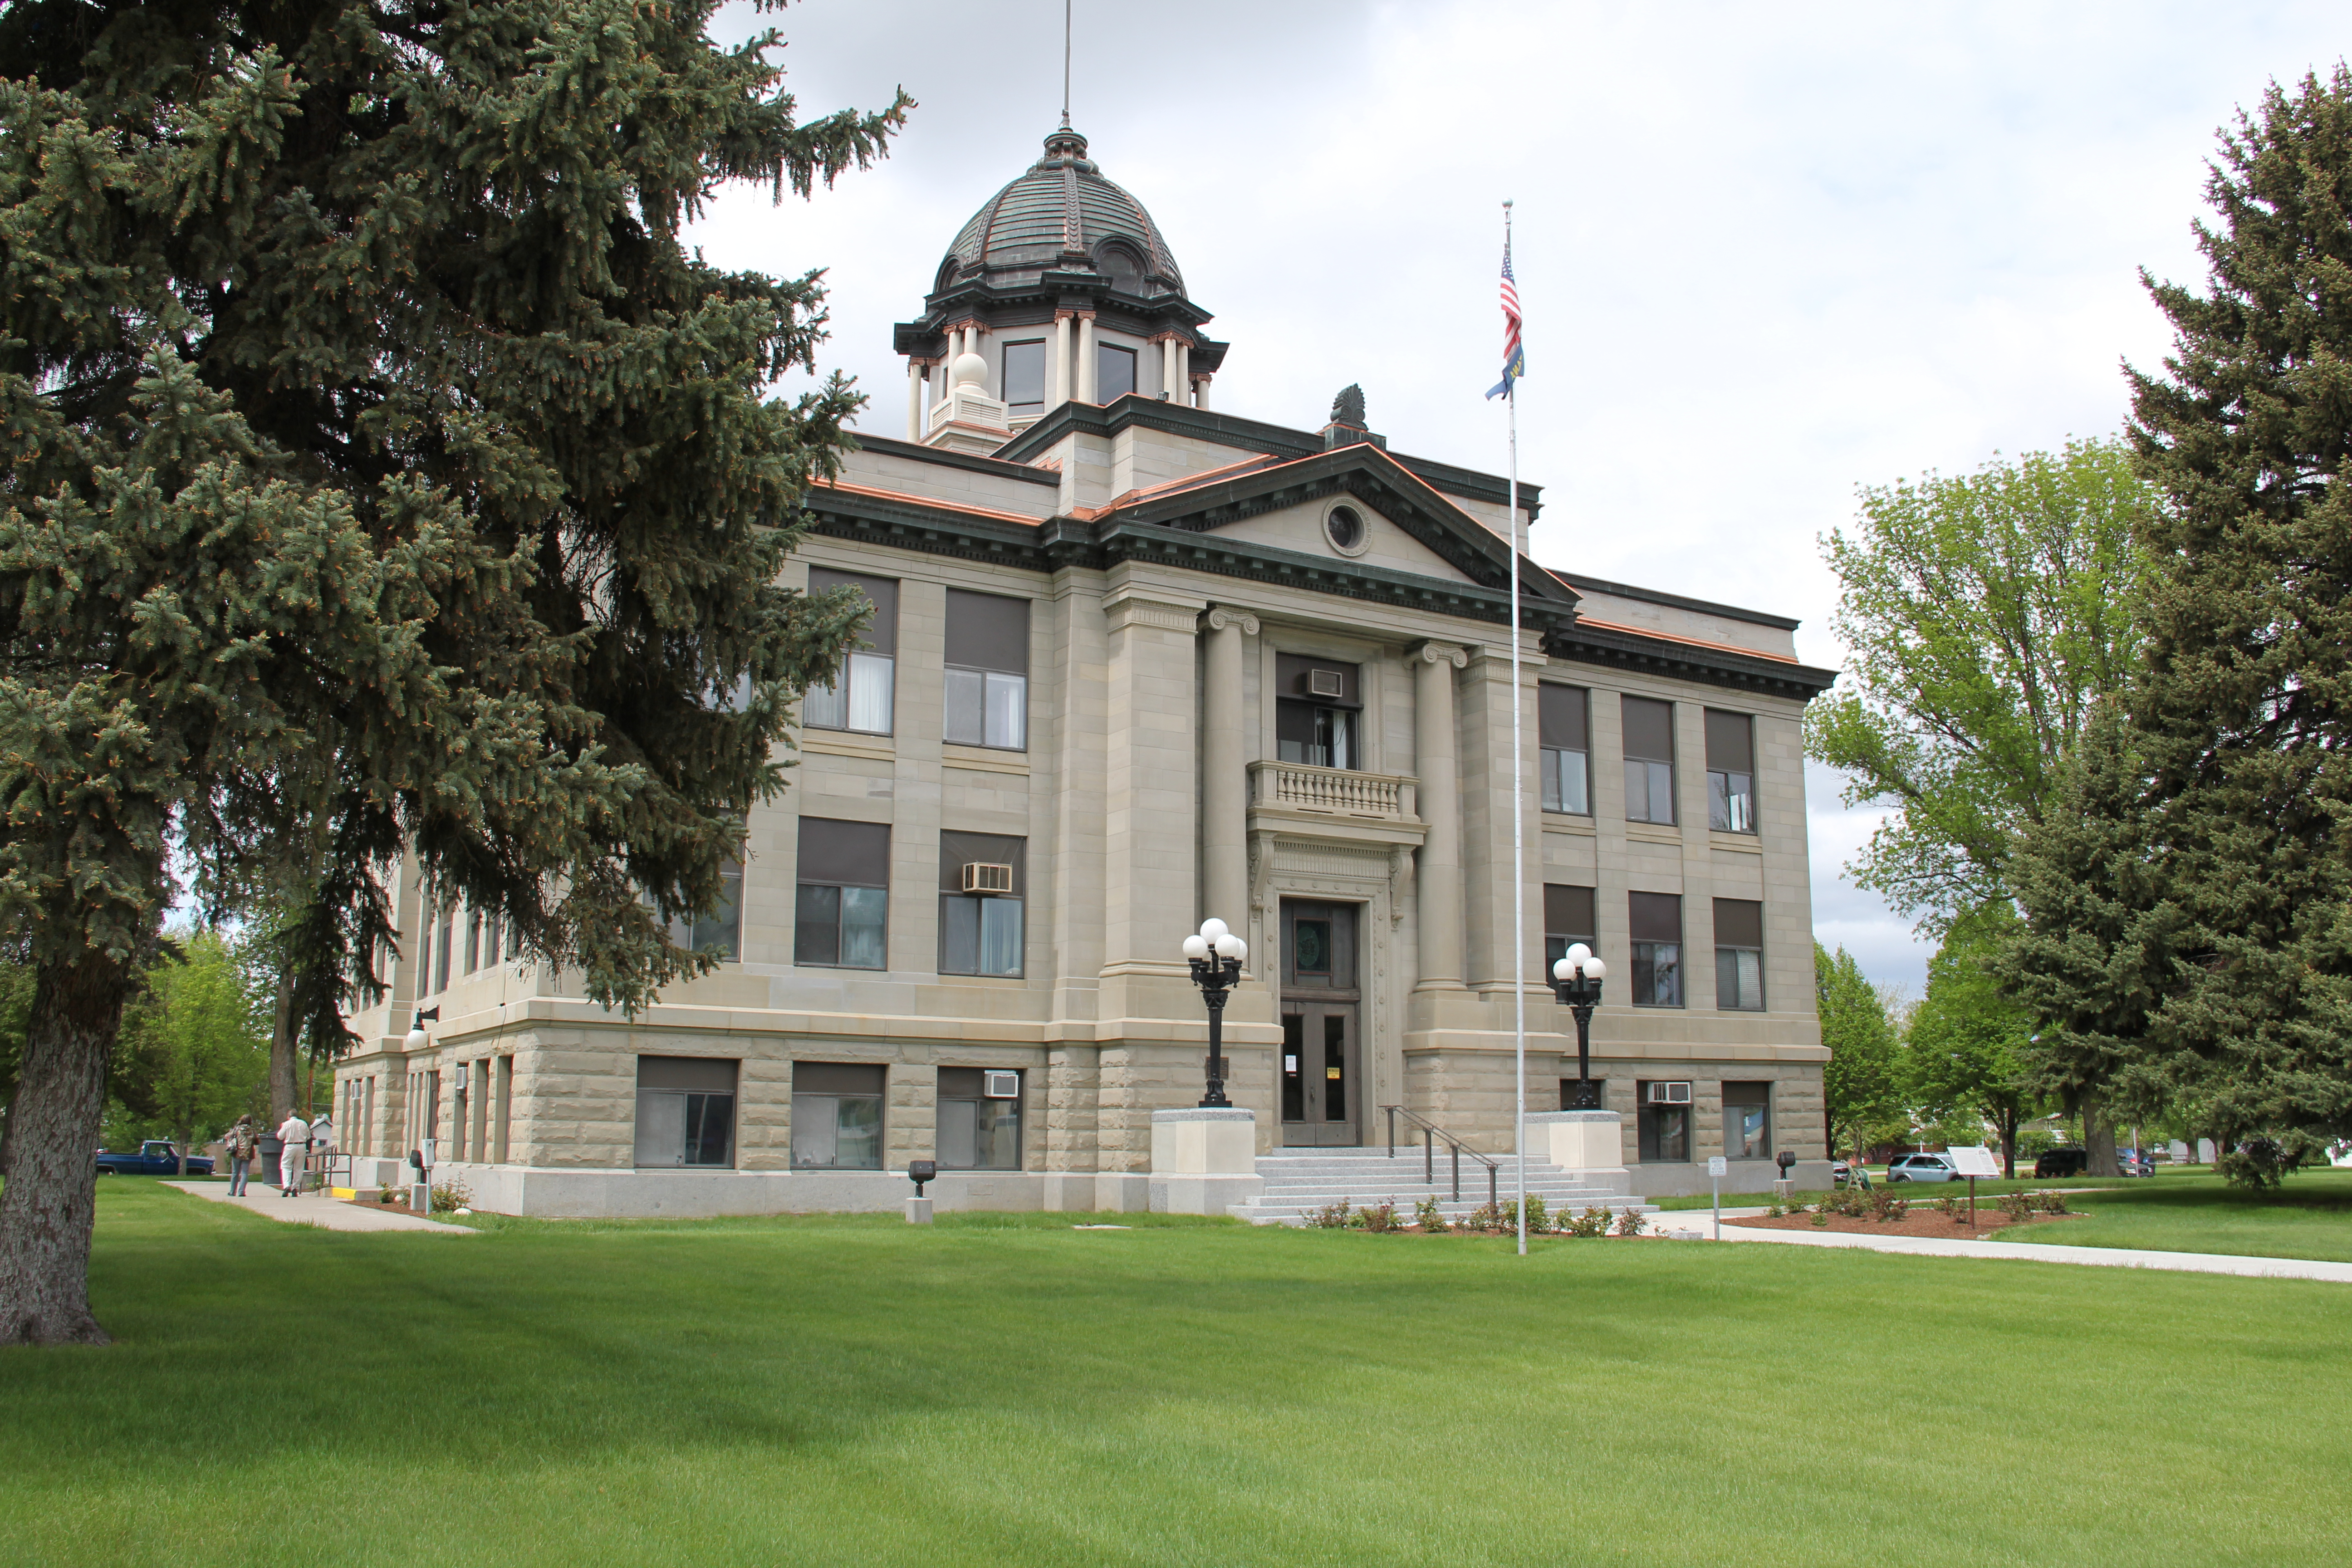 Montana rosebud county forsyth - The Rosebud County Courthouse In Forsyth Is Listed In The National Register Of Historic Places